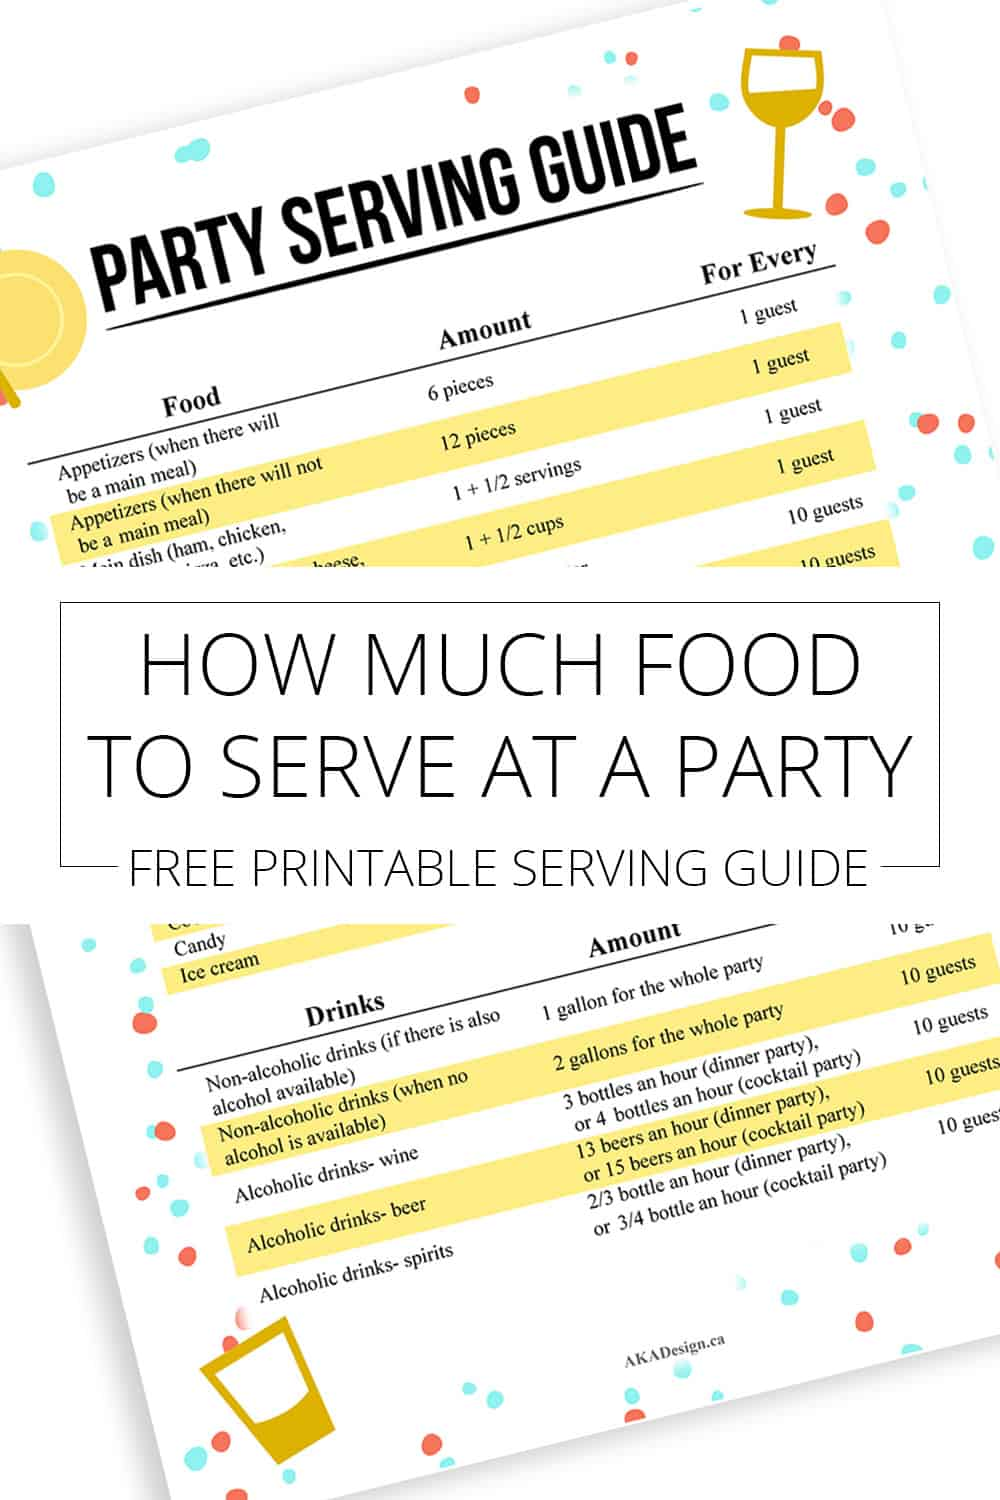 A lot goes into hosting a party. Rather than over-preparing & wasting money, here's a simple guide to help you figure out How Much Food to Serve at a Party!